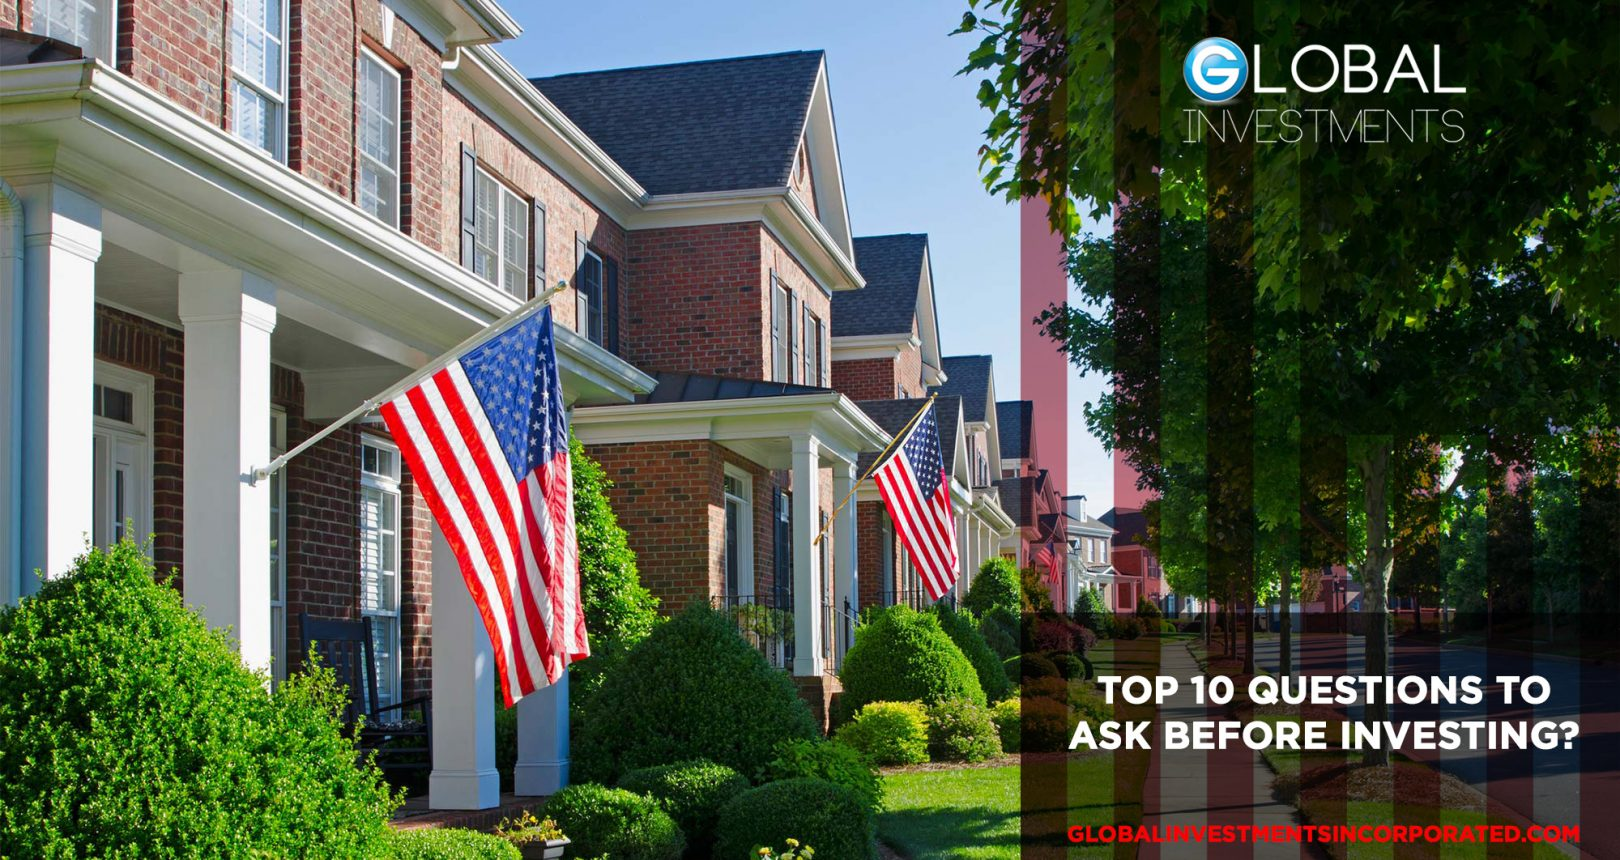 10 QUESTIONS TO ASK WHEN BUYING USA BUY TO LET INVESTMENTS